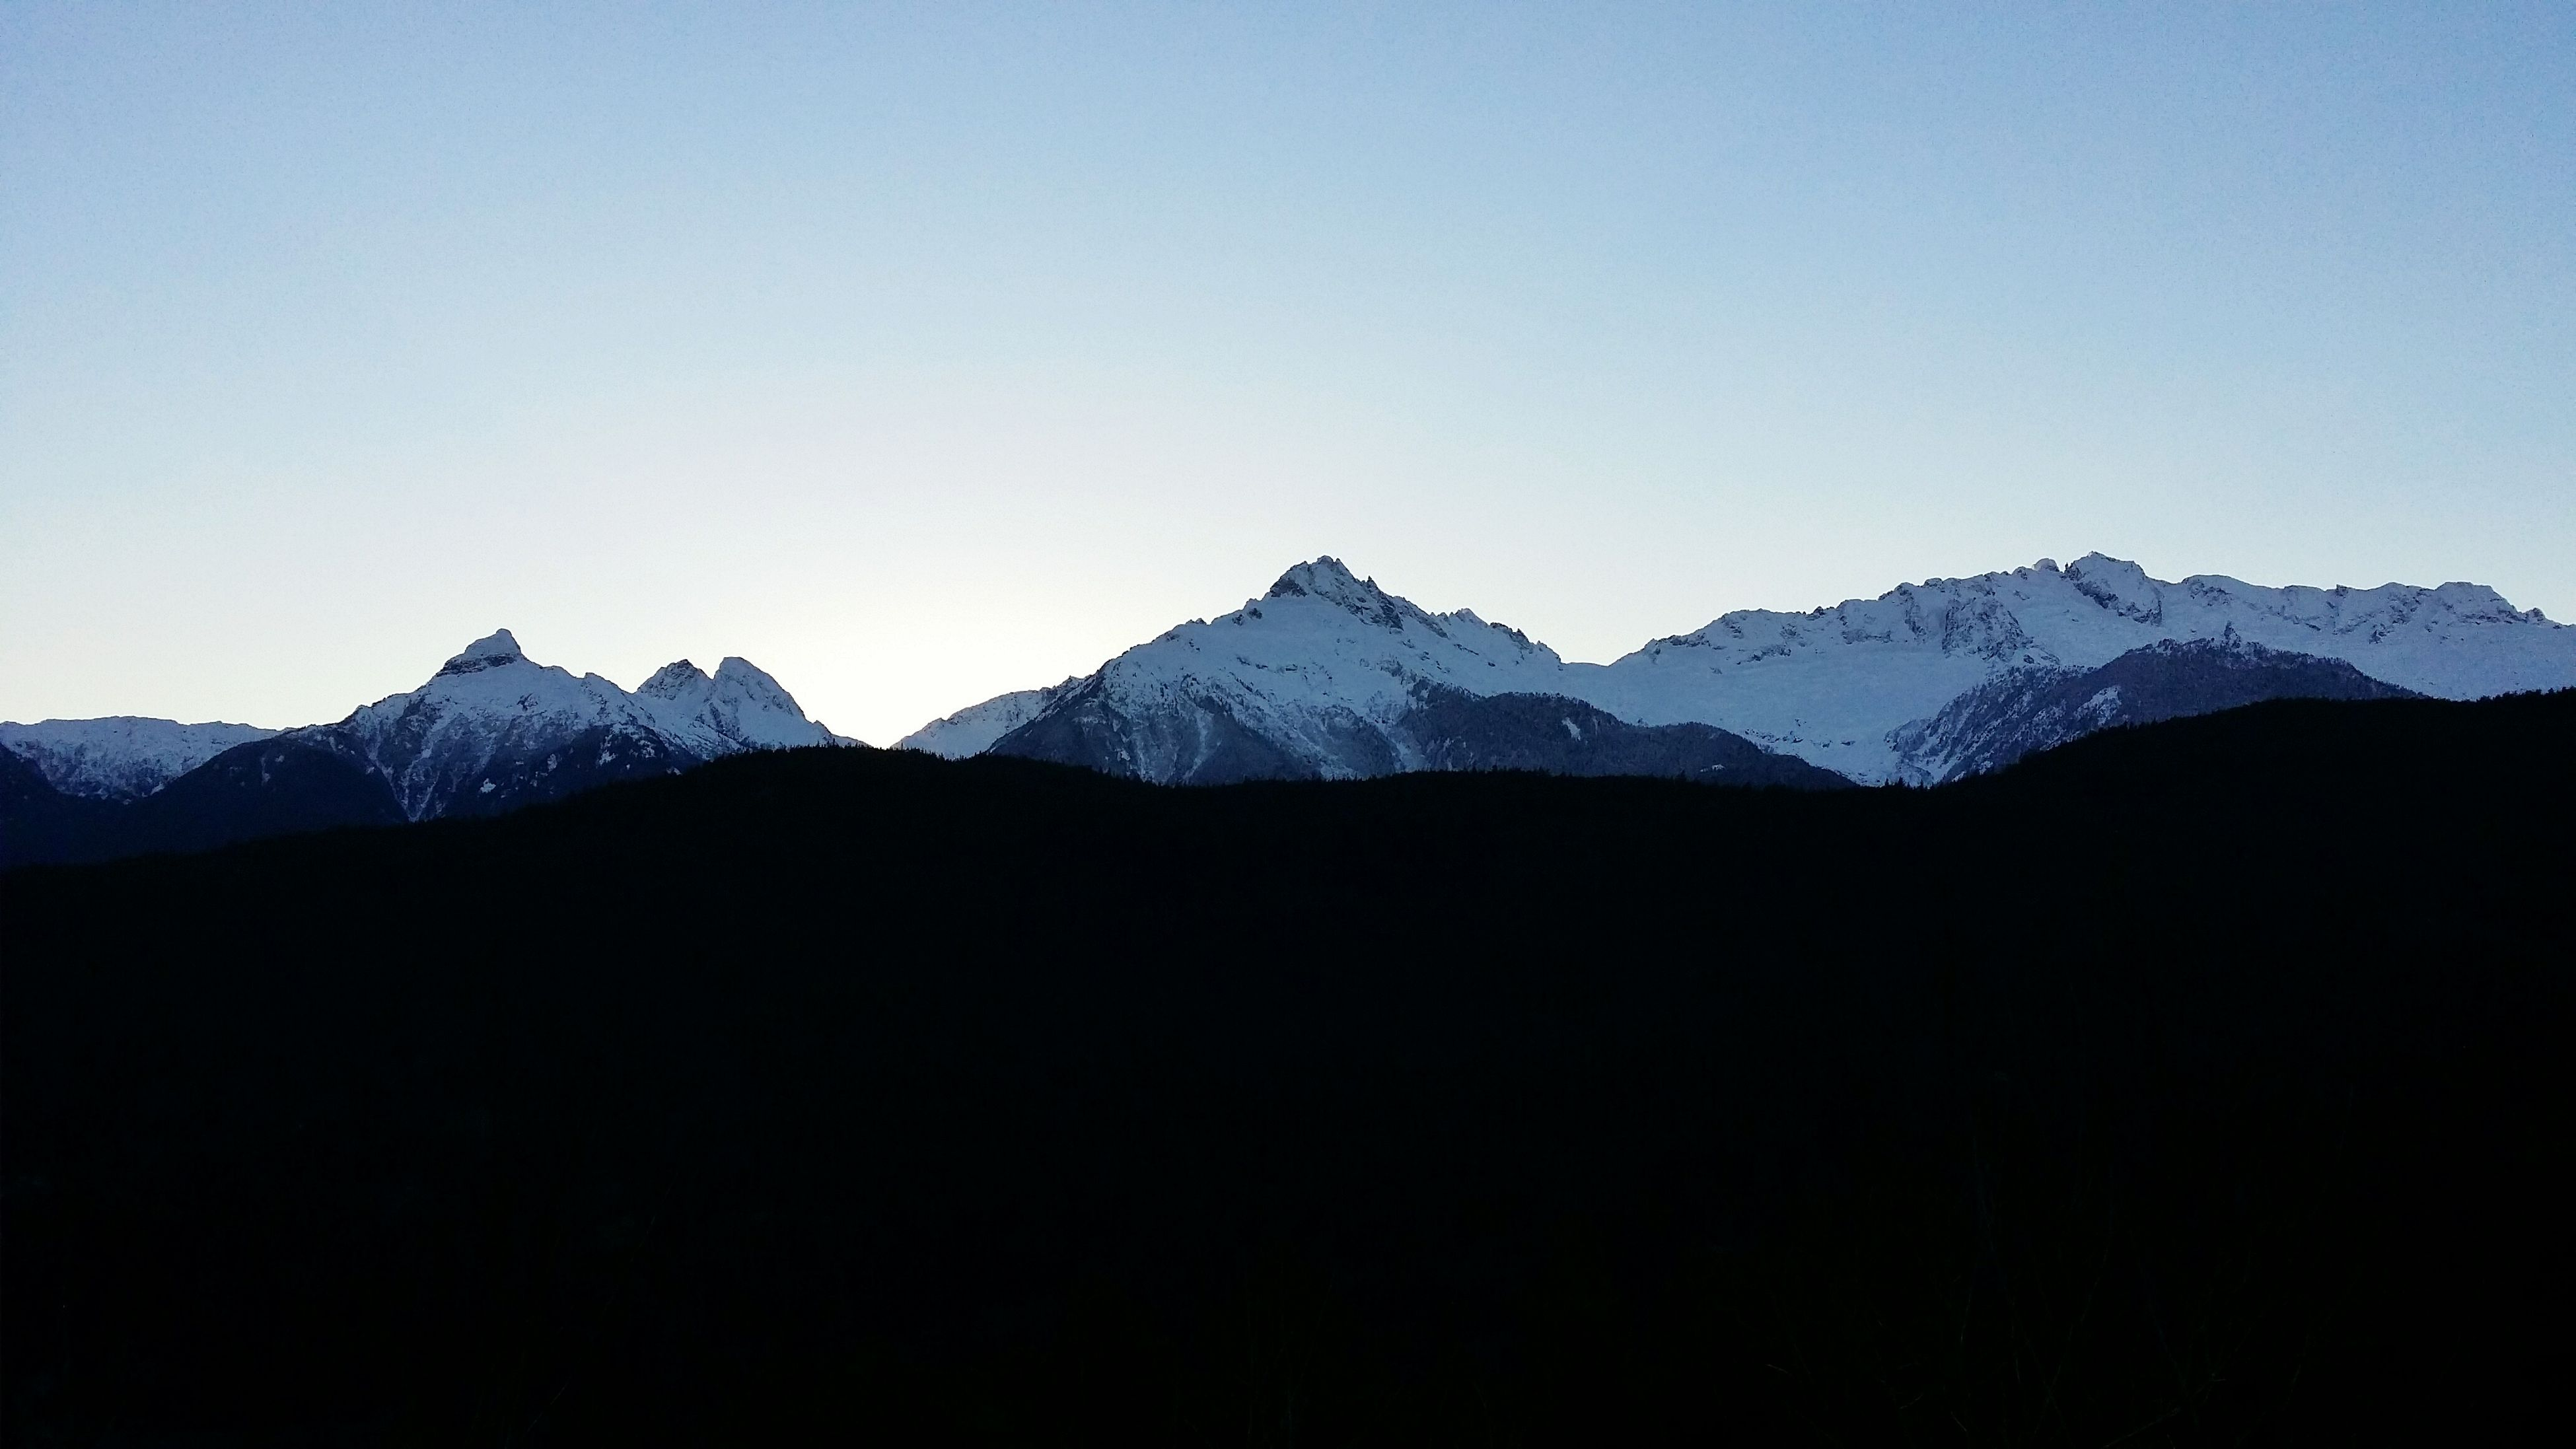 mountain, clear sky, copy space, mountain range, tranquil scene, scenics, tranquility, beauty in nature, snow, winter, nature, cold temperature, landscape, idyllic, majestic, silhouette, blue, snowcapped mountain, non-urban scene, remote